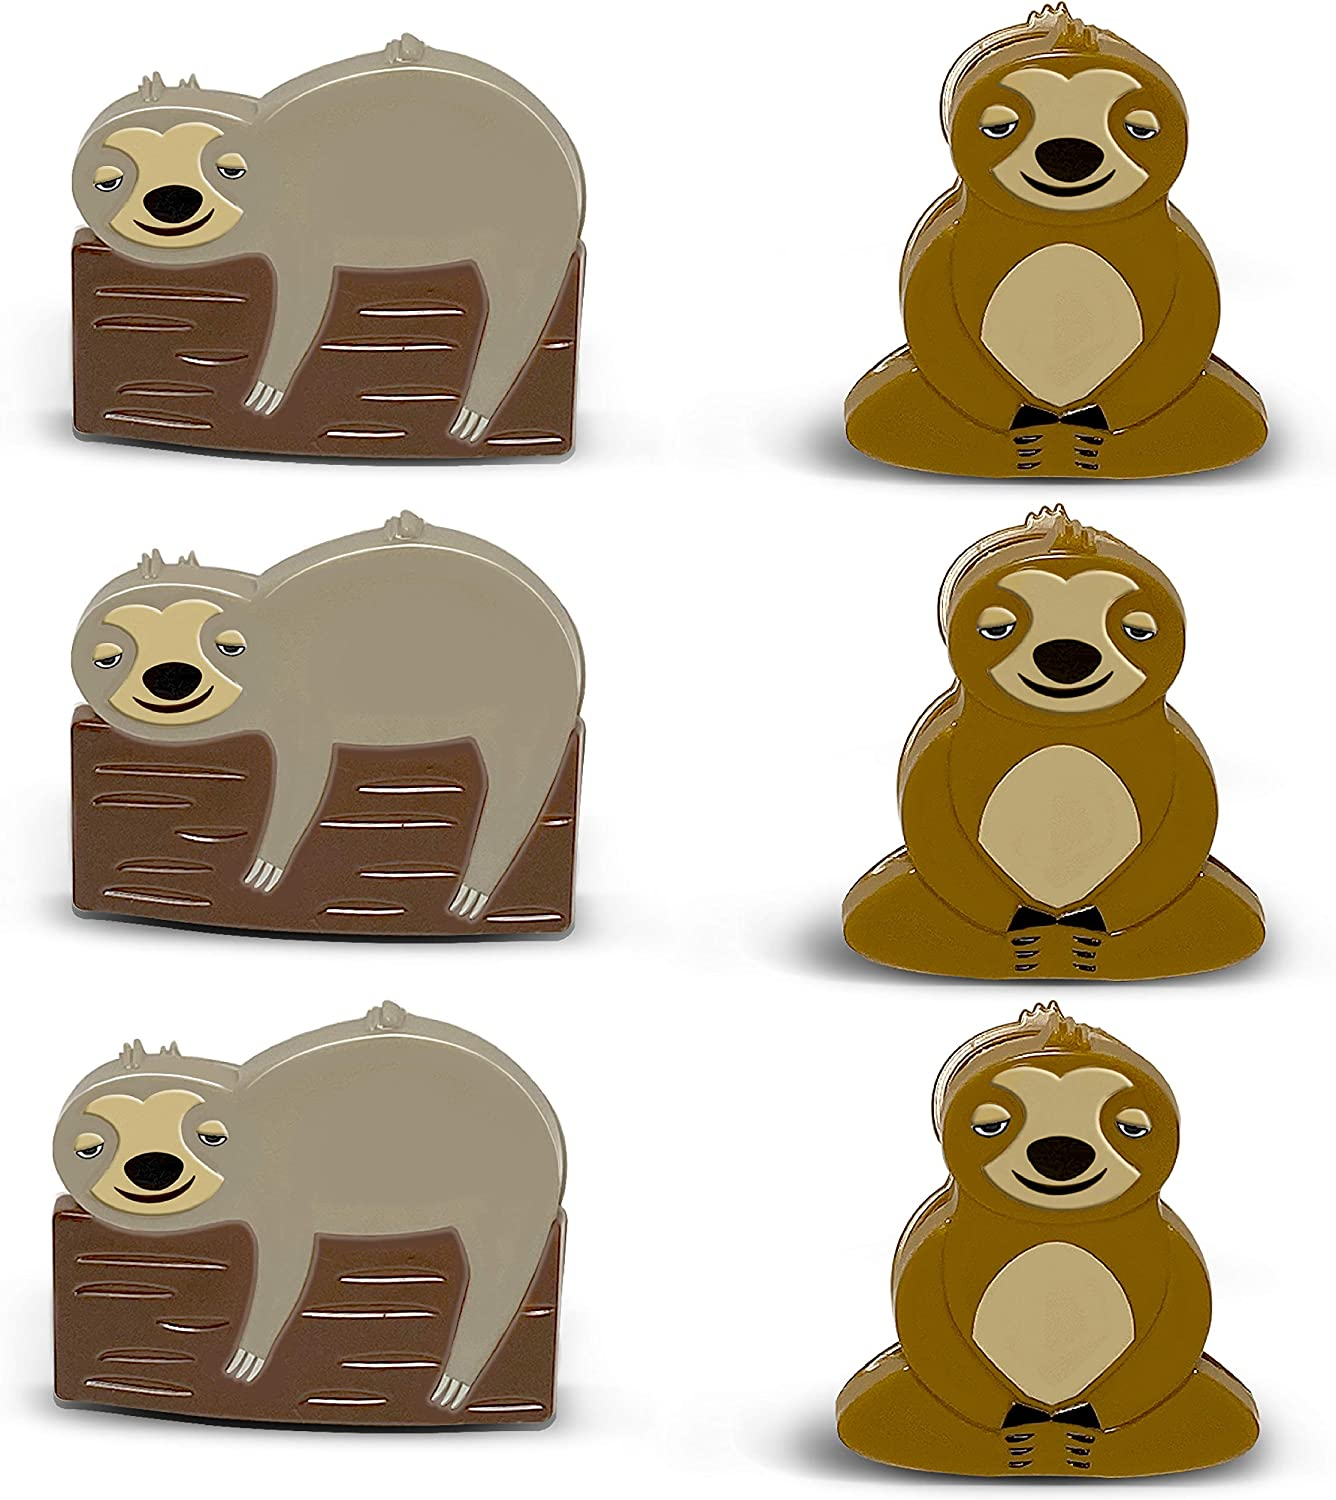 6 Pack Sloth Bag Clips, Kitchen Chip Clips Set, Tight Seal for Food Bags, Air Tight Snack Bag Grip, Multipurpose Bag Clips for Food Storage, Woodland Sloth Animals